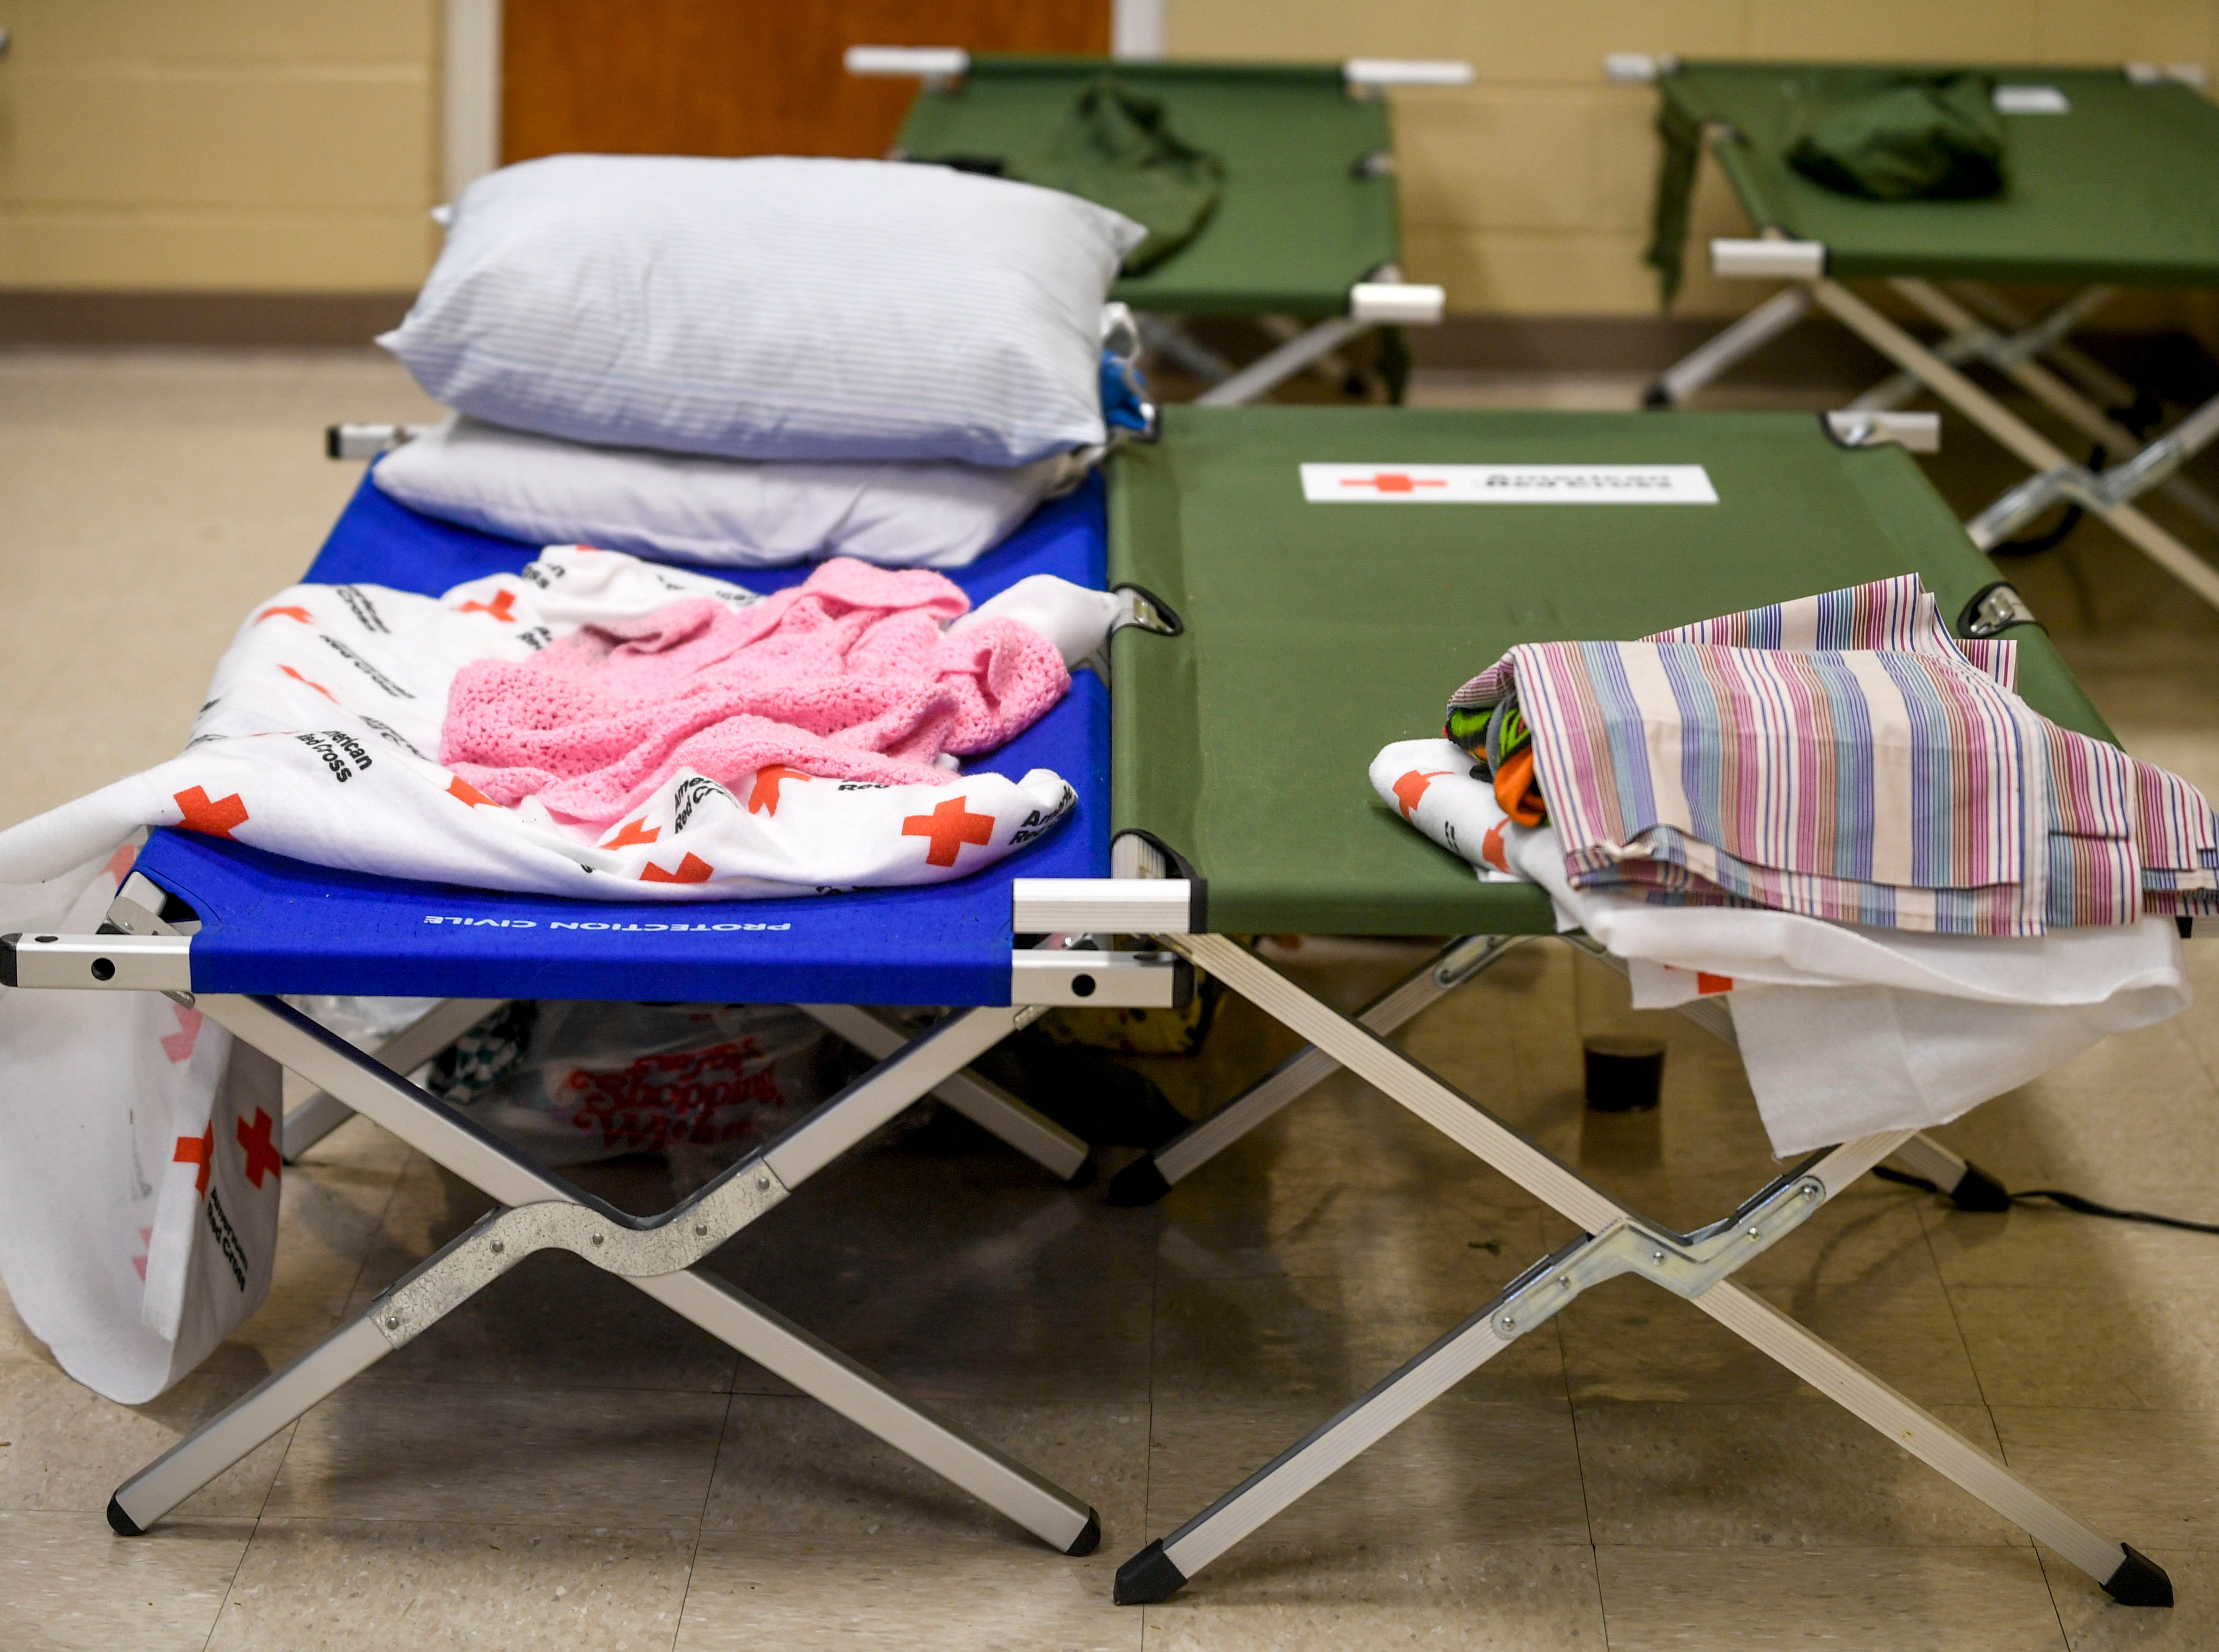 Cots in use are draped with blankets and belongings of this seeking shelter at Savannah Church of Christ, in Savannah, Tenn., on Monday, Feb. 25, 2019.